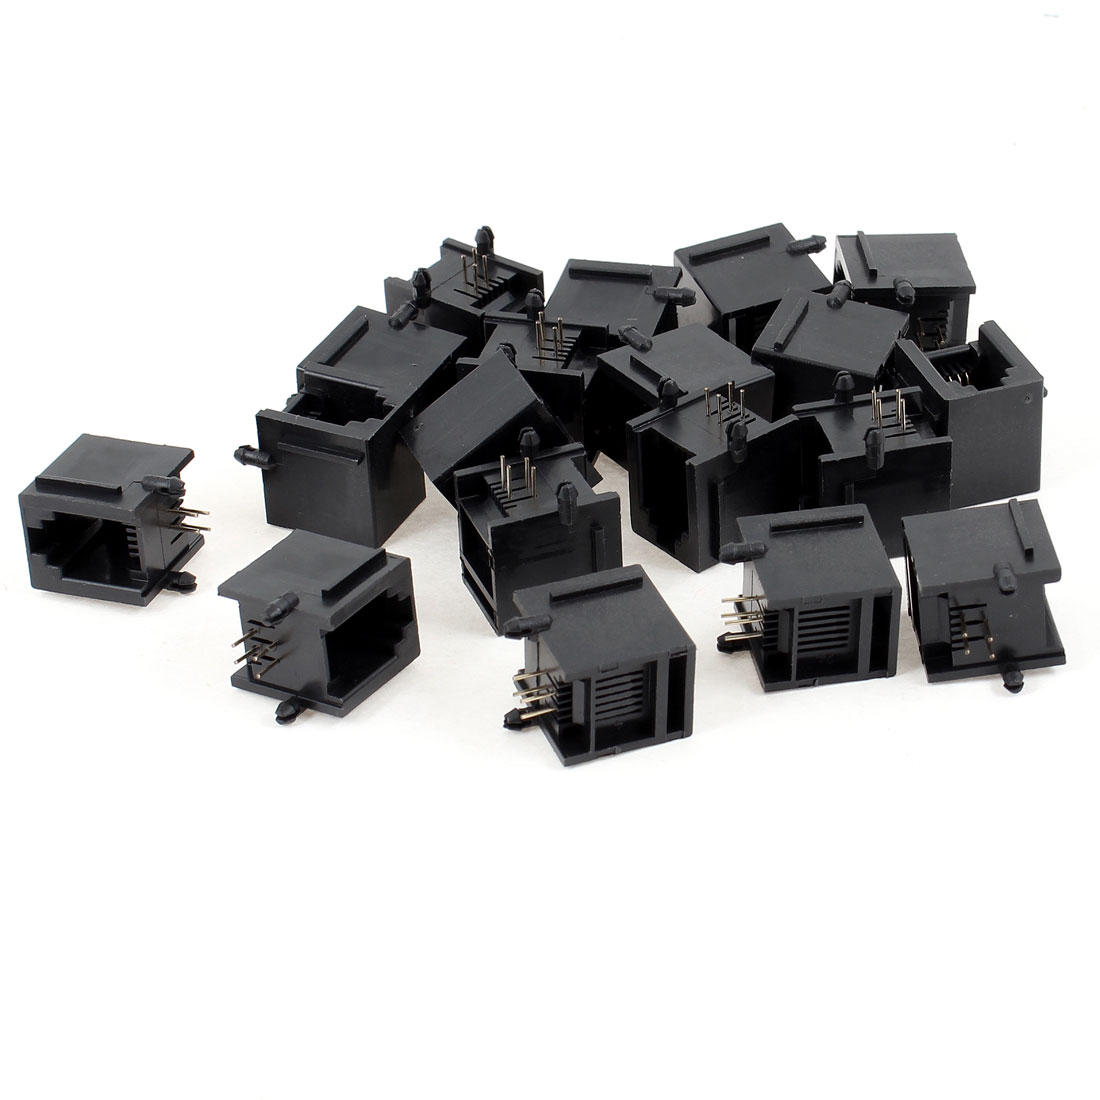 19 Pcs Black Plastic Unshielded RJ11 6P4C Network Modular PCB Connector Jacks